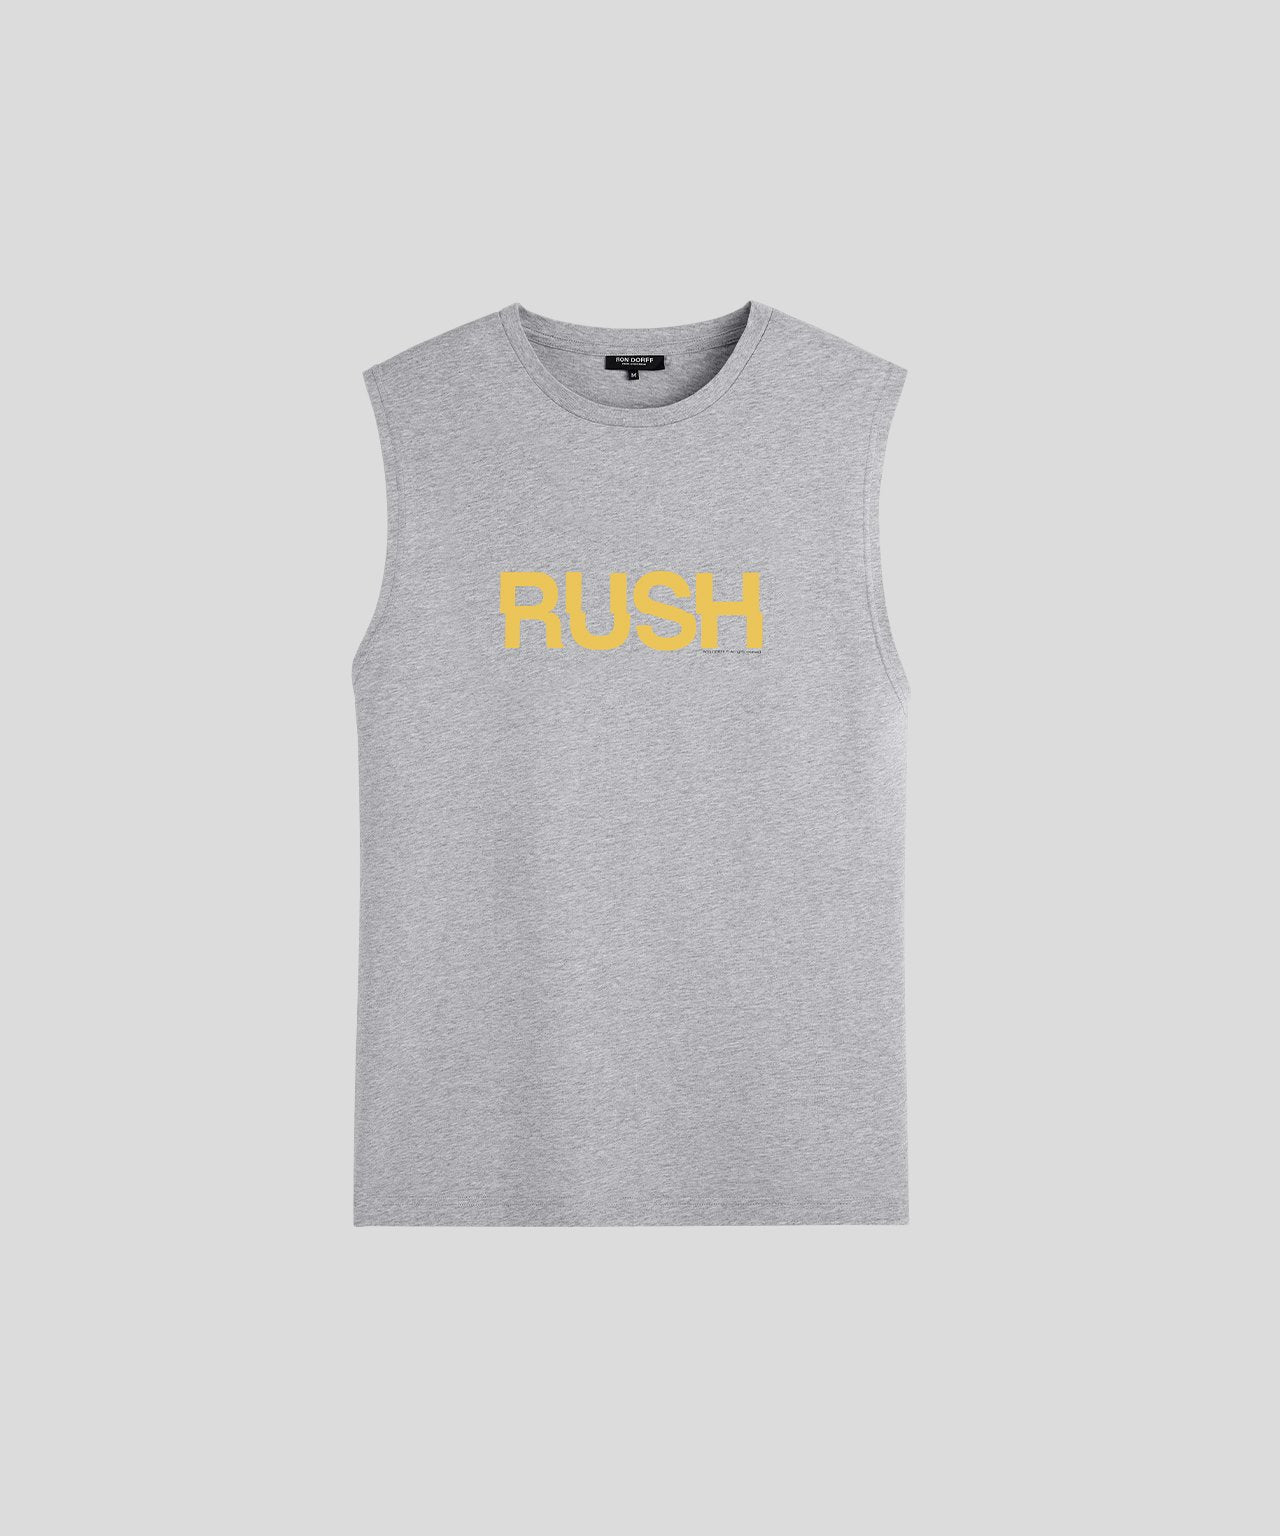 Sleeveless T-Shirt RUSH - grey melange